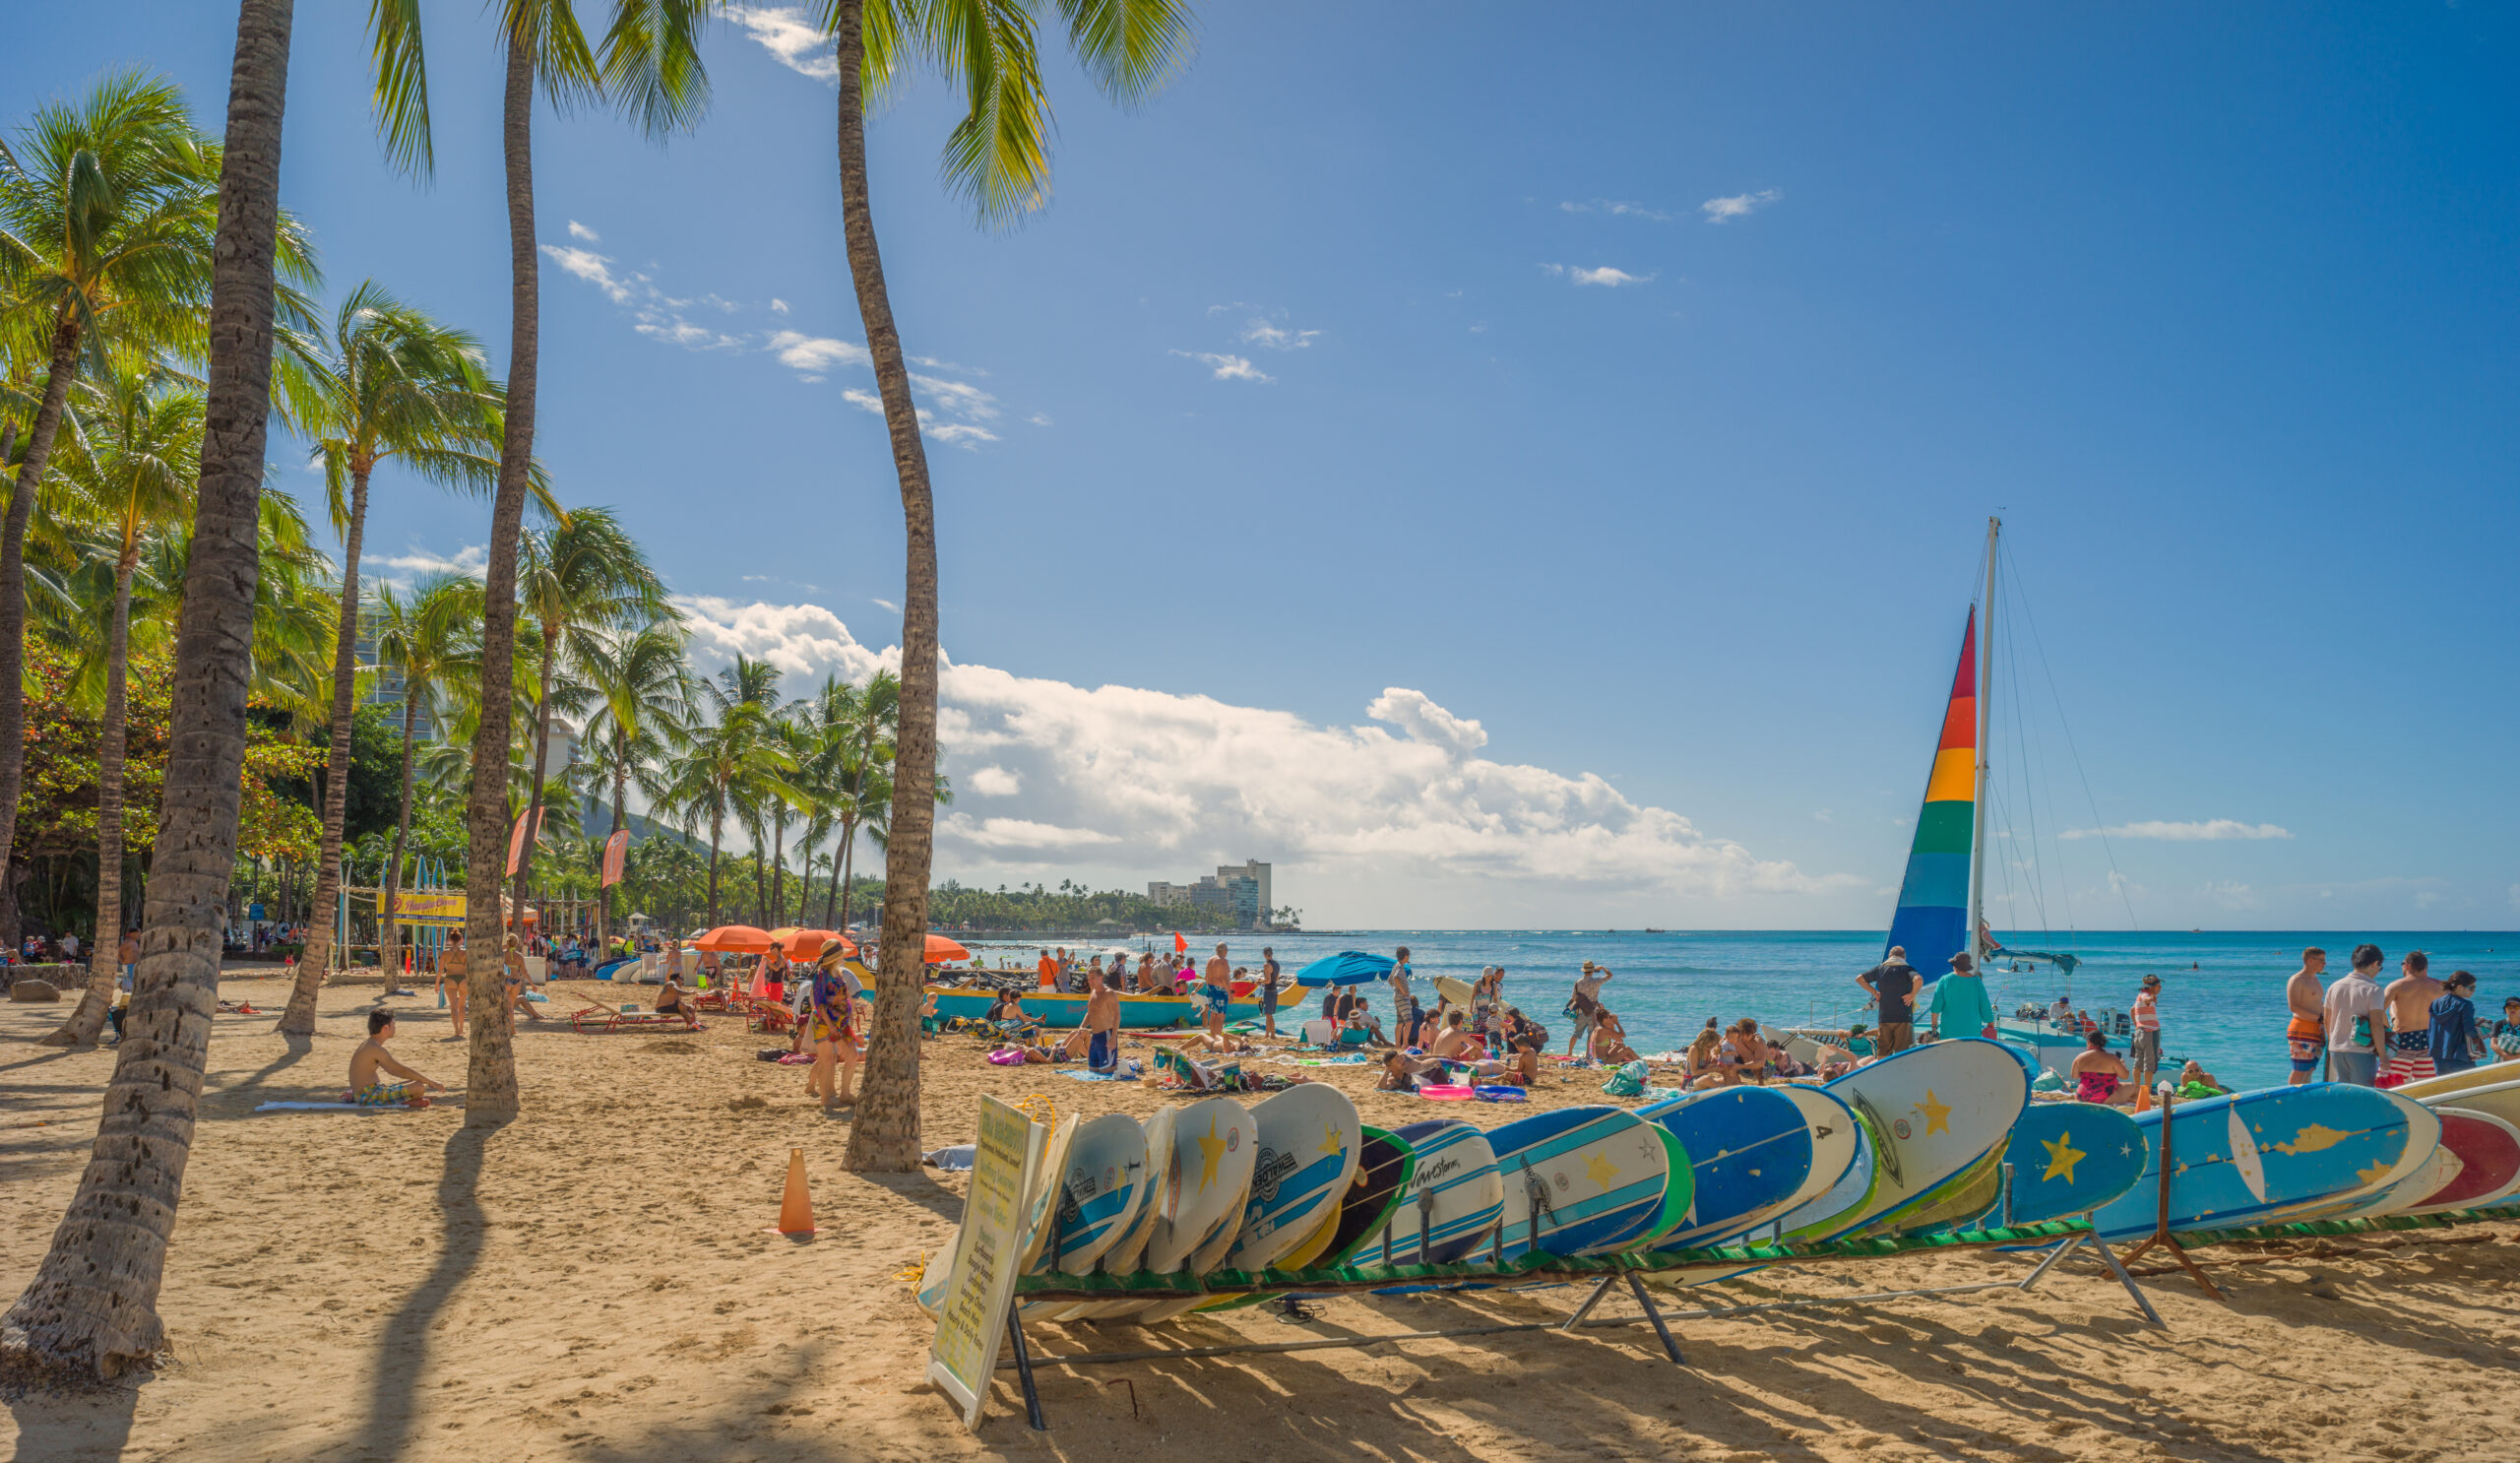 Waikiki Beach scene on a warm Winter morning as tourists and residents gather for a day in the sun and surf. Waikiki is just as famous to surfers as it is to beachgoers.